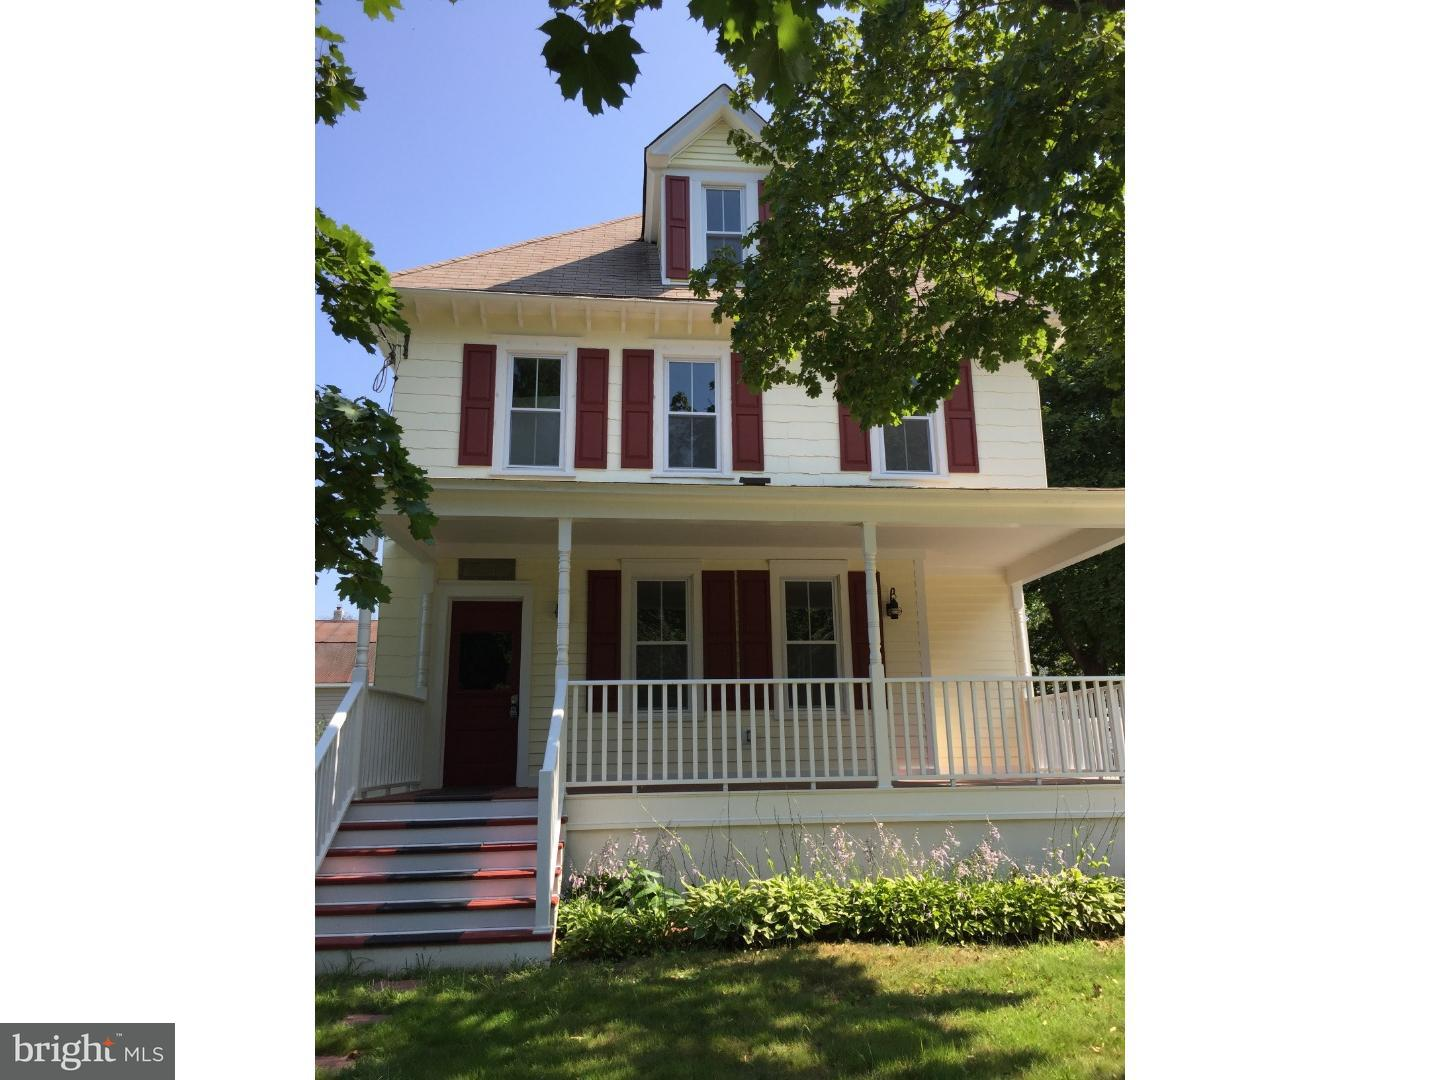 127 LINCOLN AVE, IVYLAND - Listed at $399,900, IVYLAND